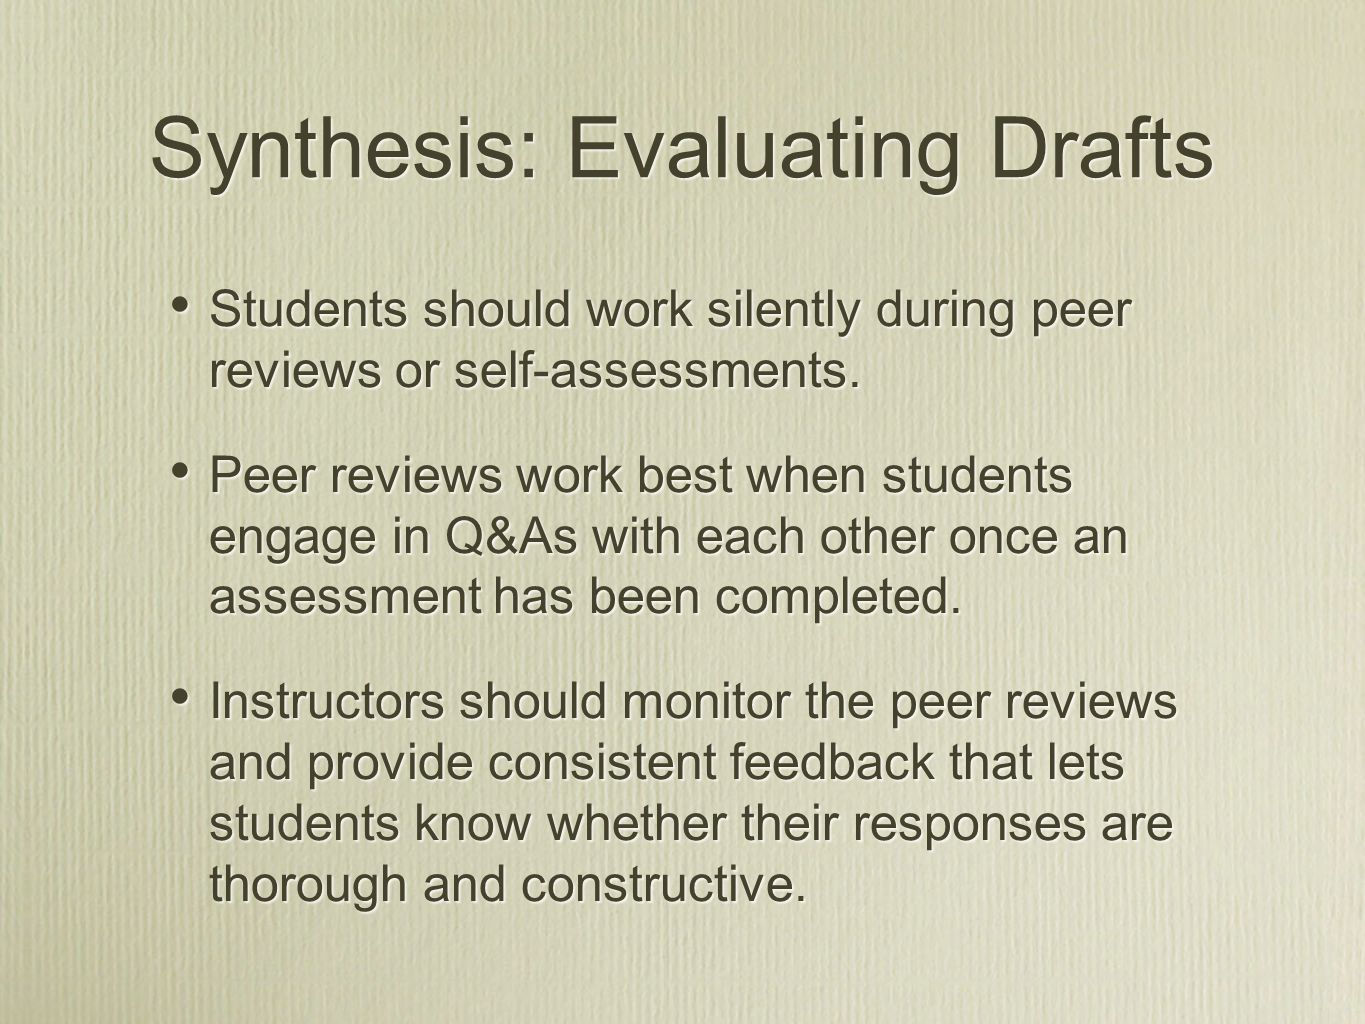 Synthesis: Evaluating Drafts Students should work silently during peer reviews or self-assessments.